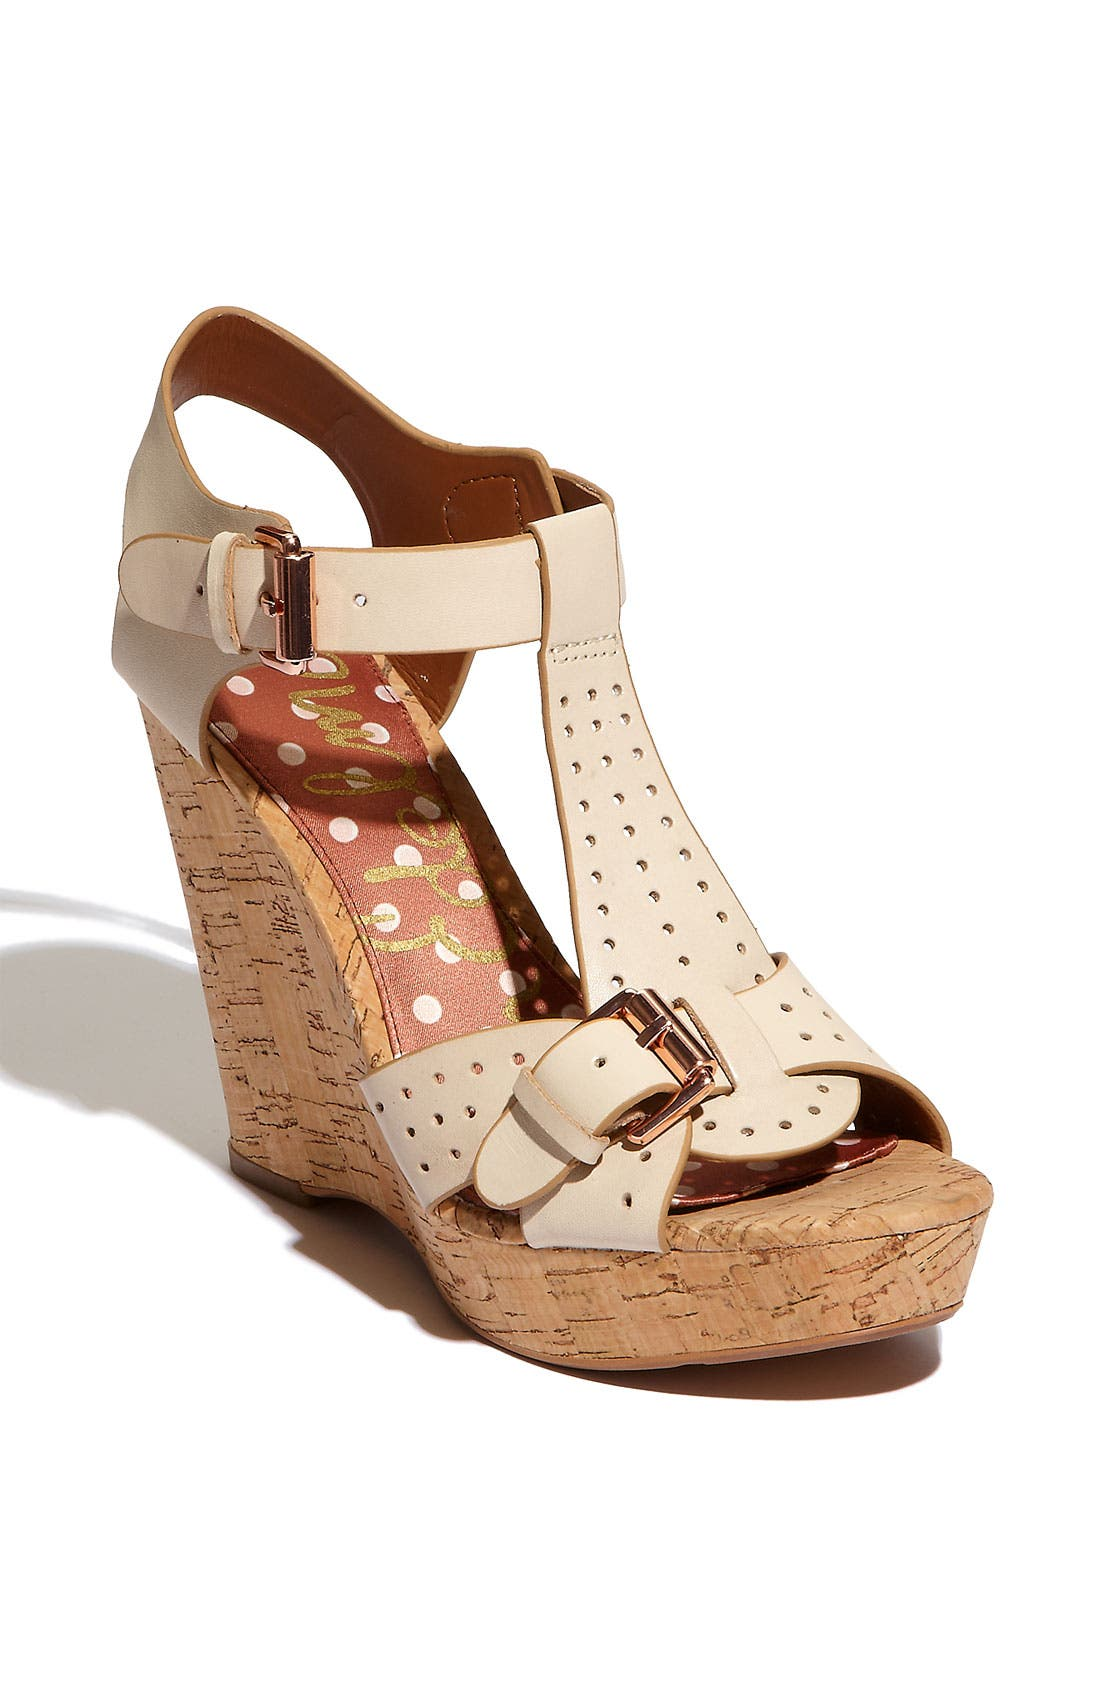 Main Image - Sam Edelman 'Karli' Wedge